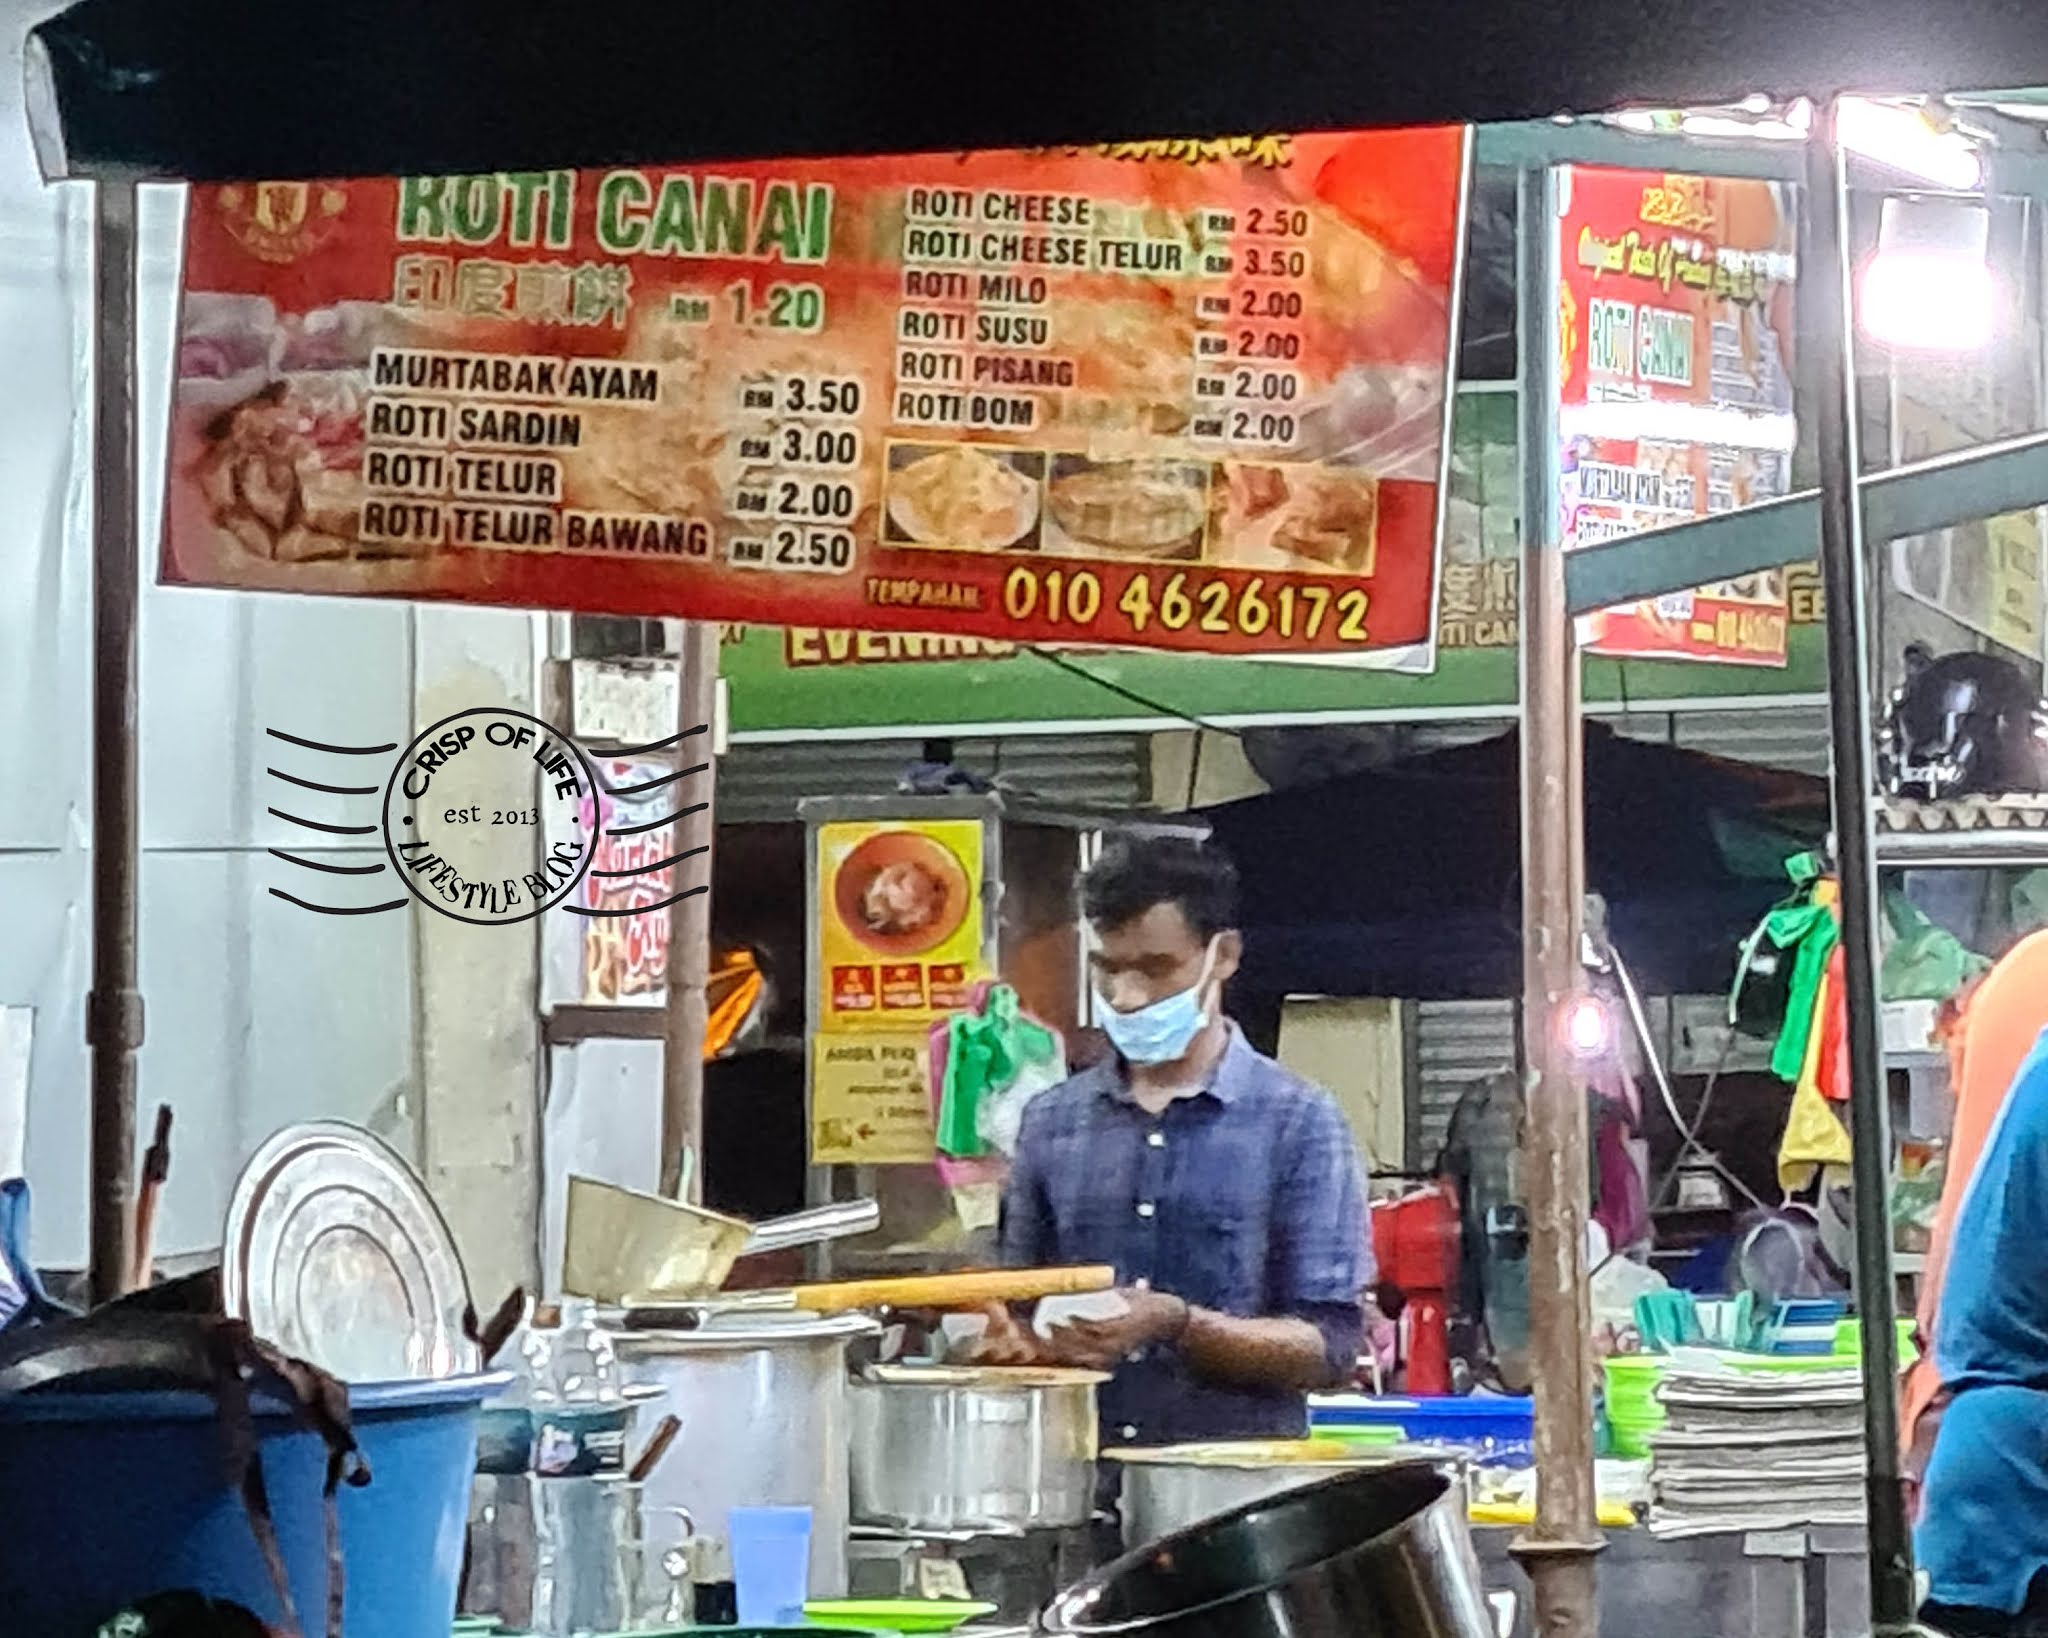 Underrated Breakfast Roti Canai @ Jalan Perak Morning Market